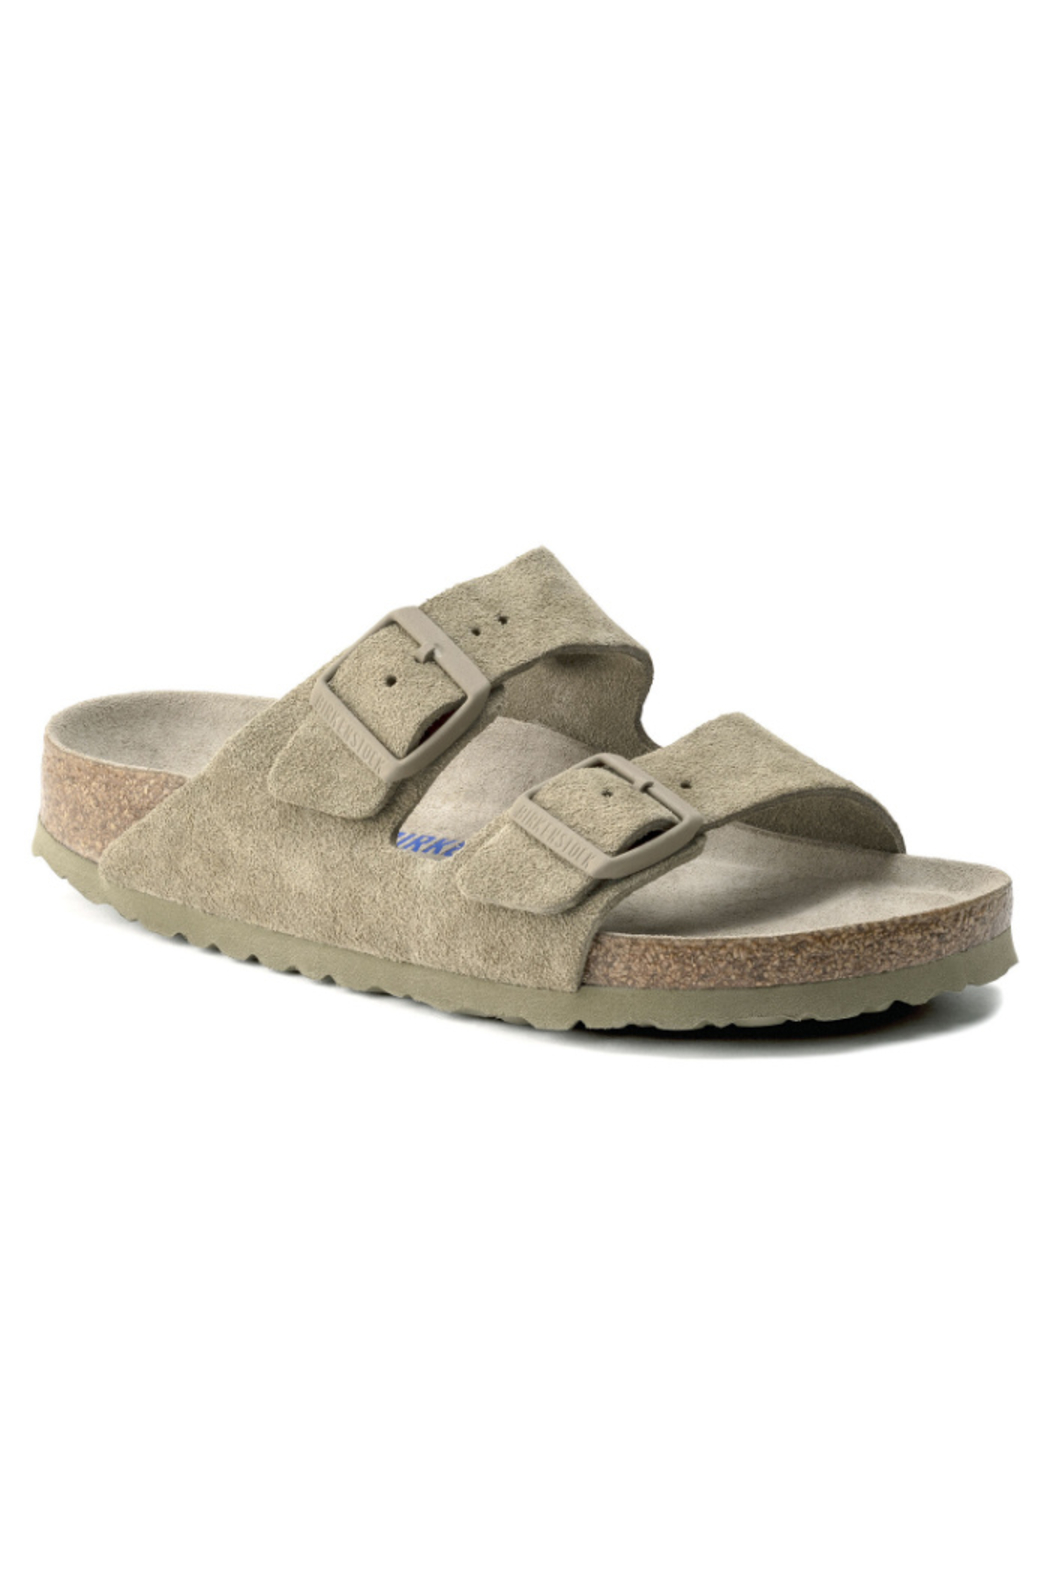 Birkenstock Arizona Soft Footbed Suede Leather in  Faded Khaki - Main Image